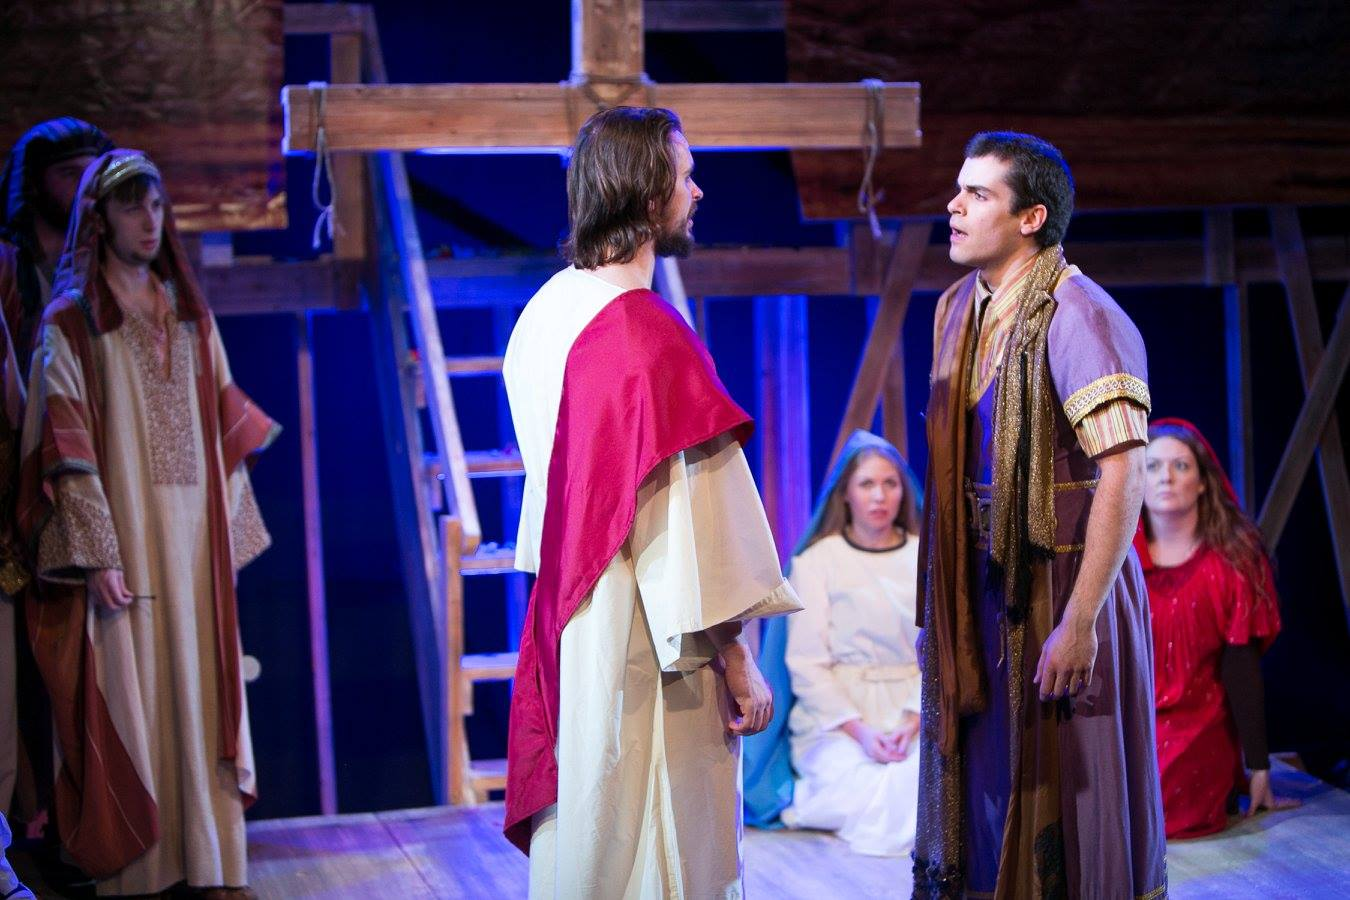 J (Jesus) and P (Pontius) with Virgin Mary, Mary Magdalene, and crowd from Act 3 of Sarah Ruhl's Passion Play costume design by Katharine Tarkulich